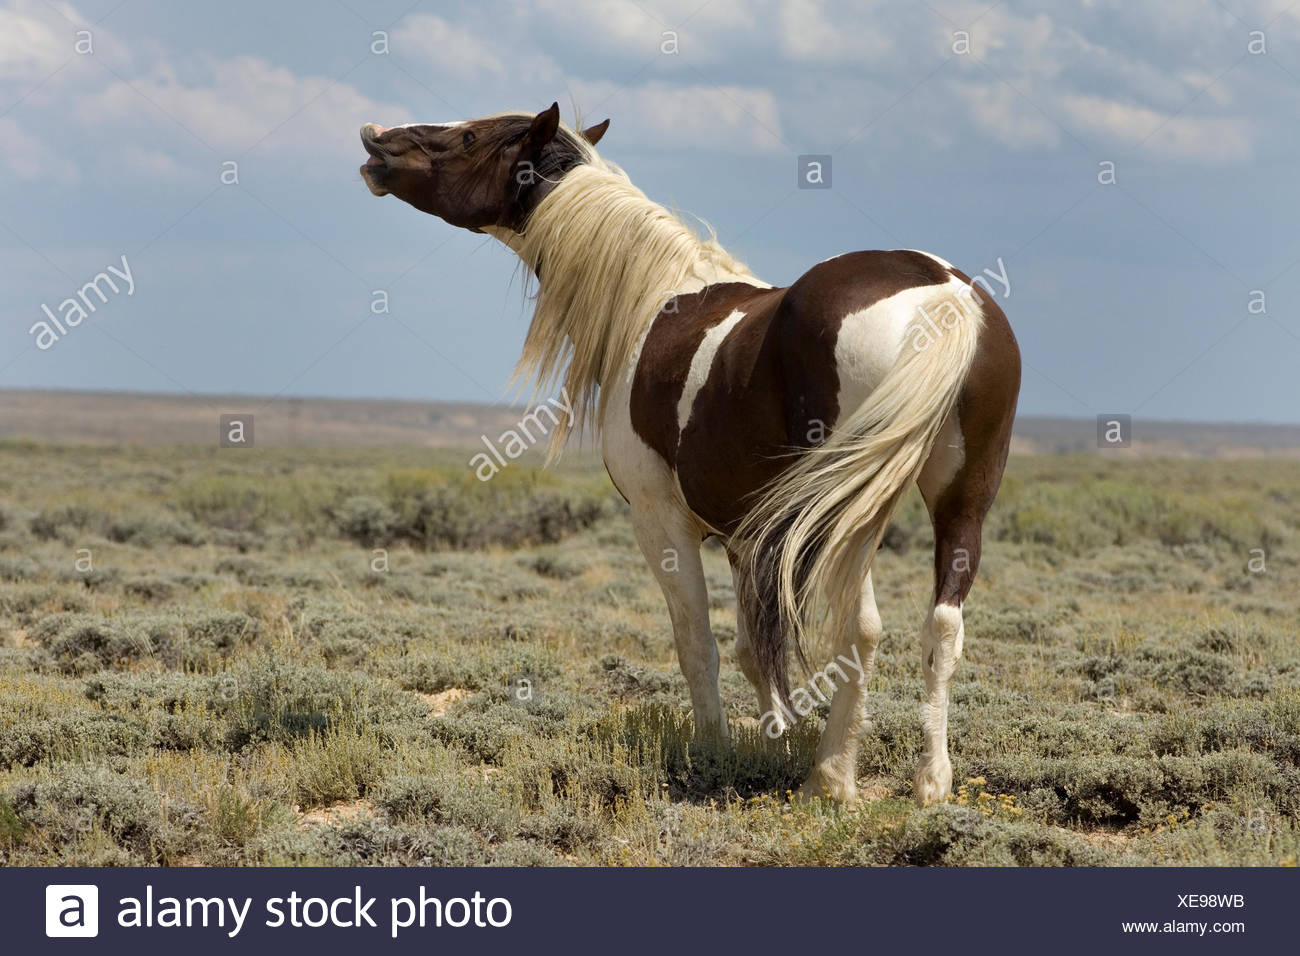 Mustang (Equus ferus caballus), stallion, piebald flehming in the prairie, Wyoming, USA Stock Photo